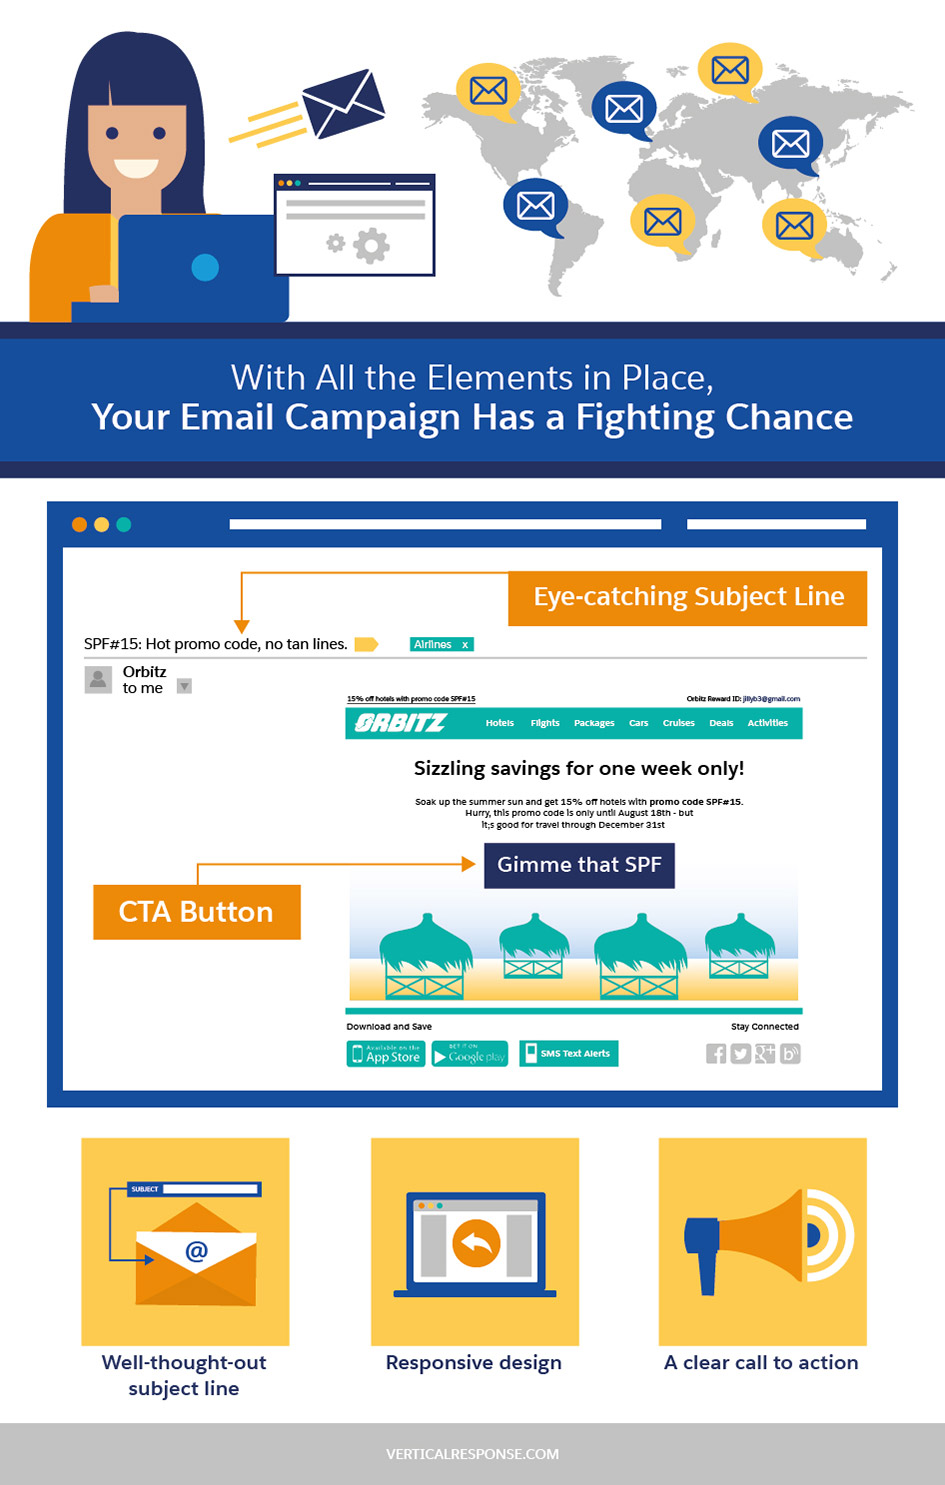 With all the Elements in Place Your Email Campaign Has a Fighting Chance